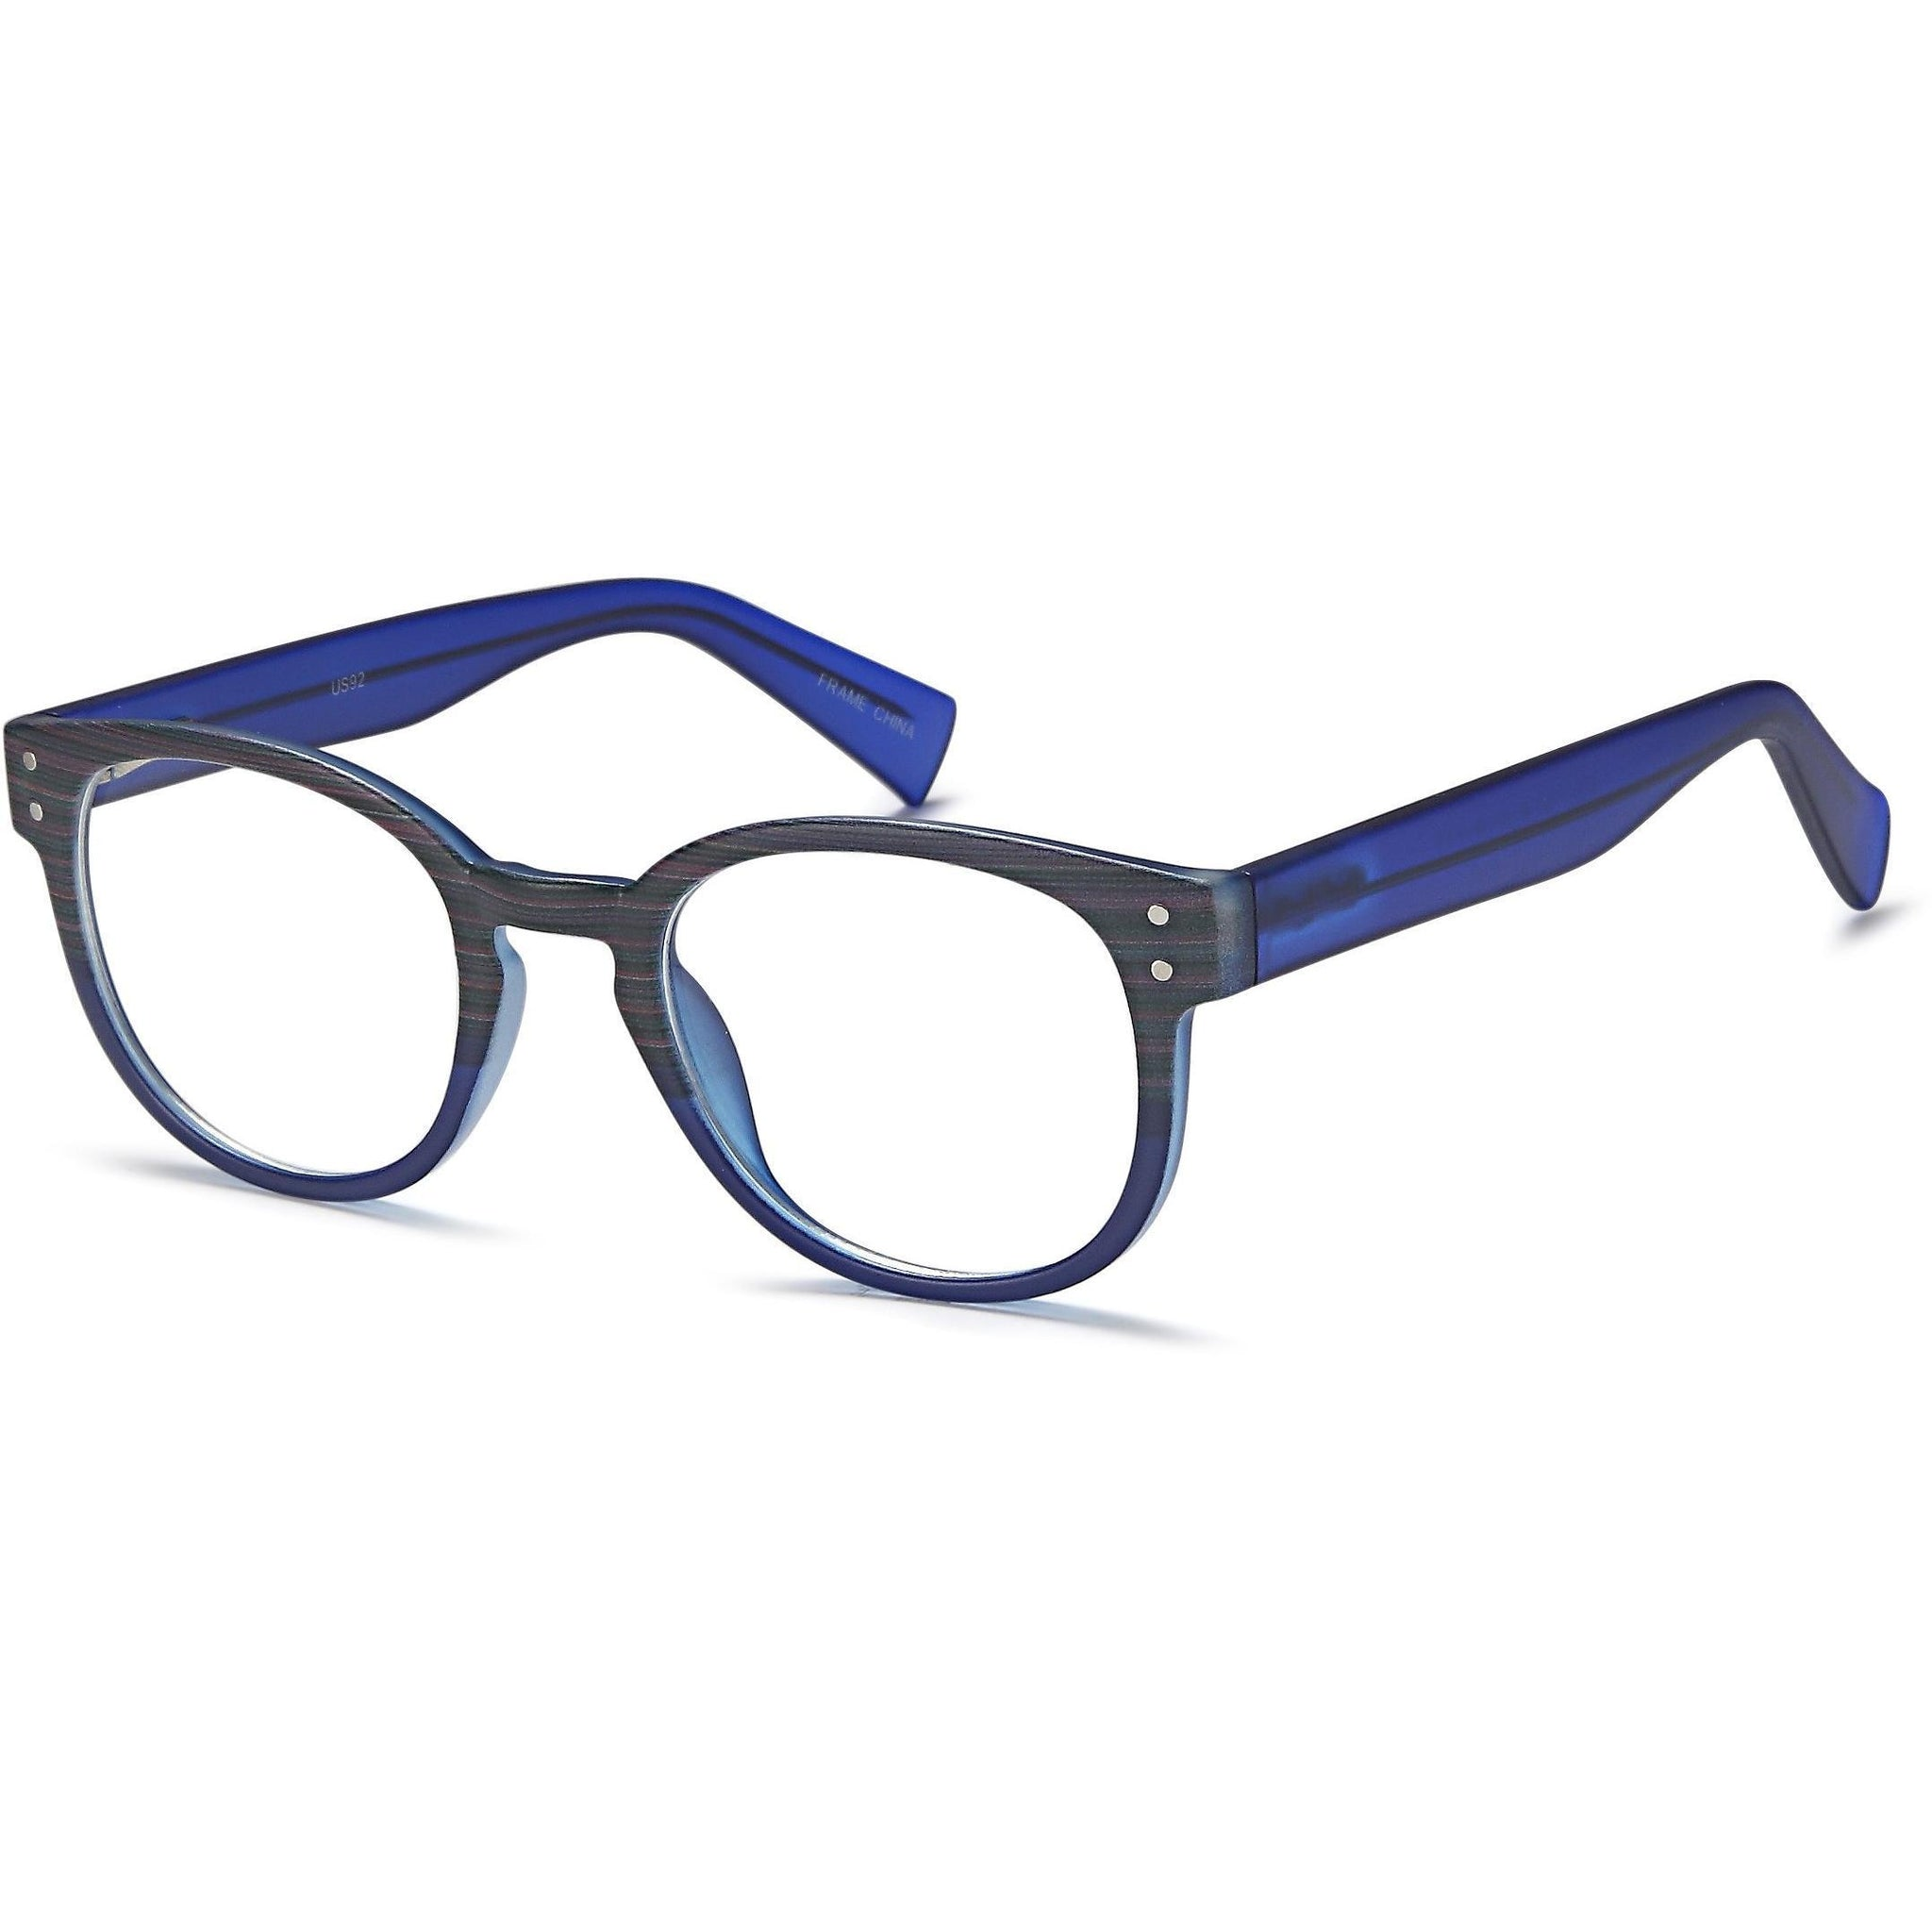 The Square Mile Prescription Glasses Oliver Eyeglasses